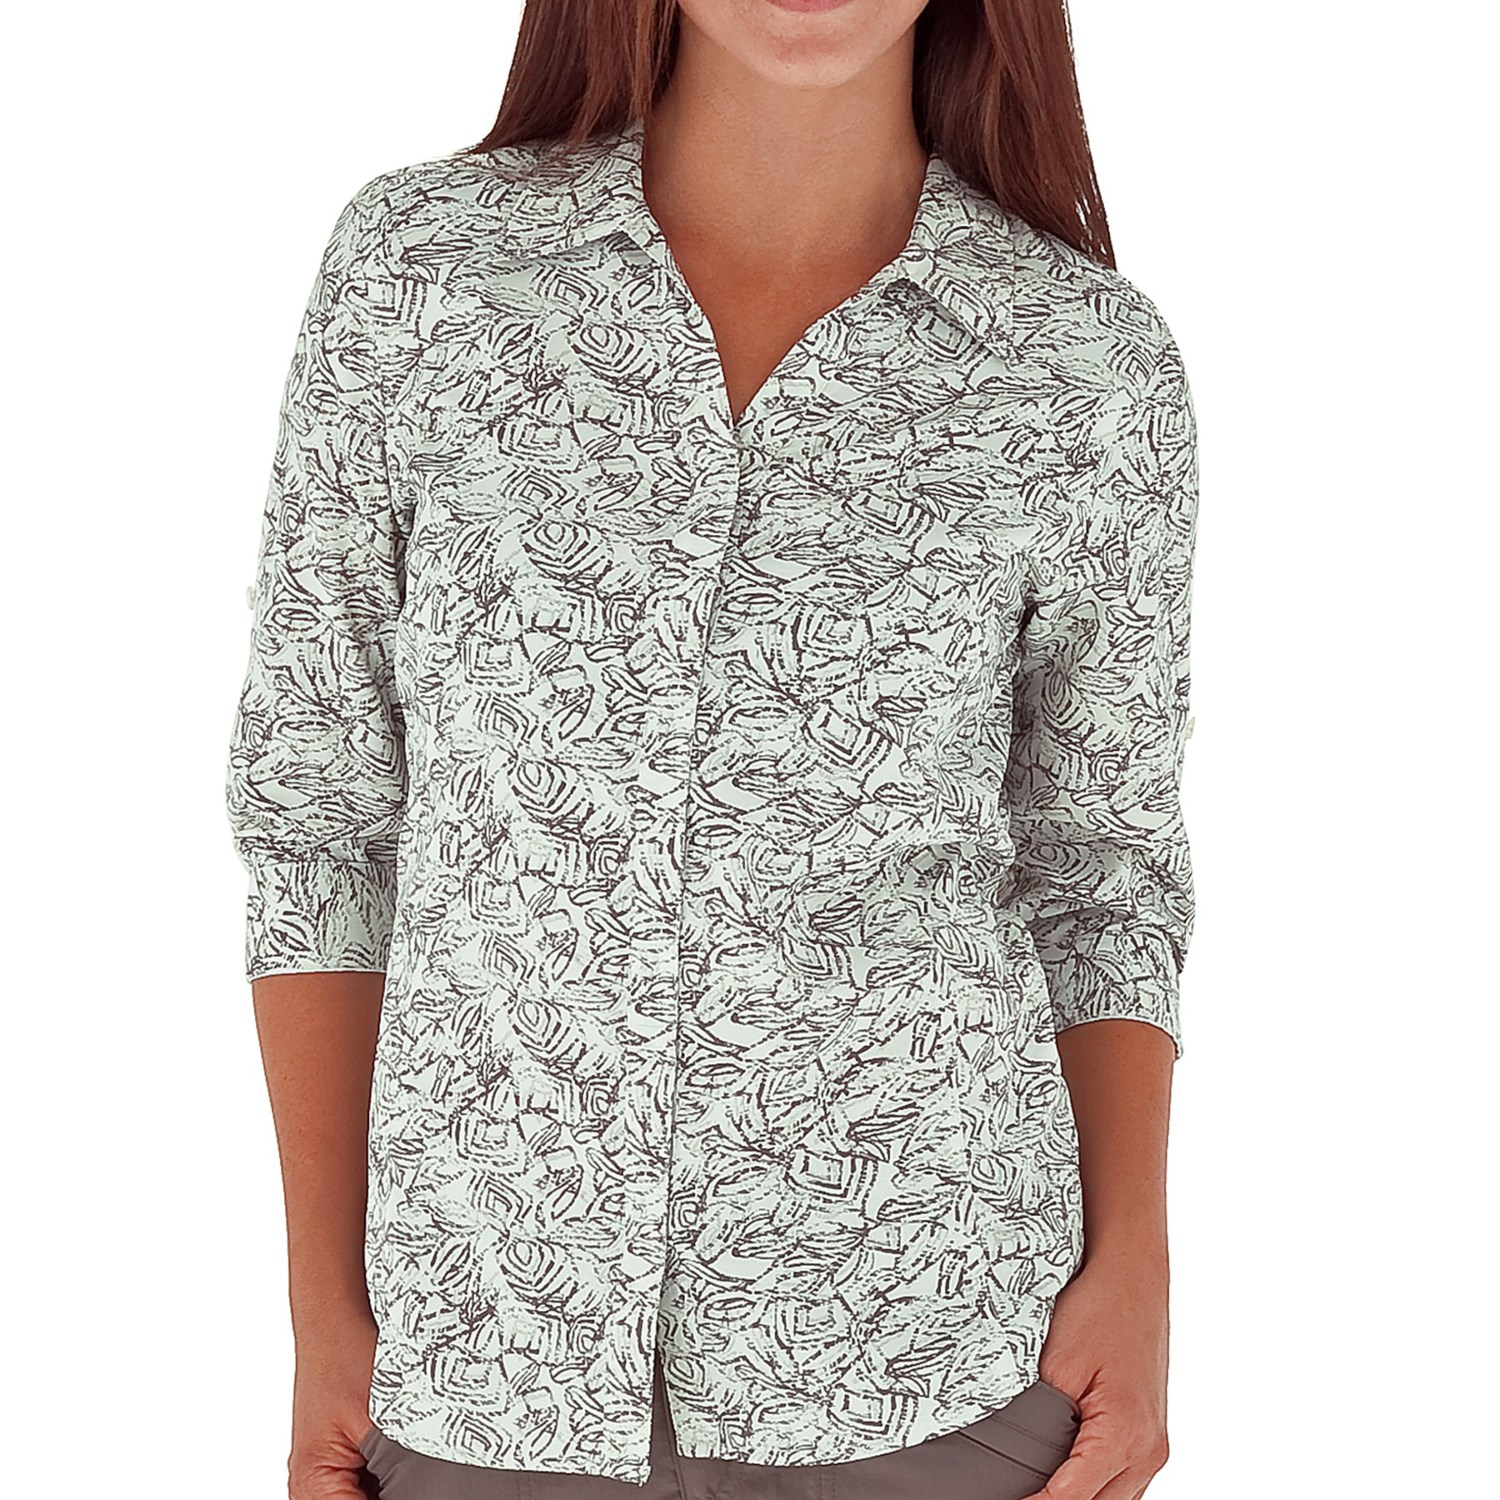 Royal robbins light expedition shirt for women save 58 for Royal robbins expedition shirt 3 4 sleeve women s